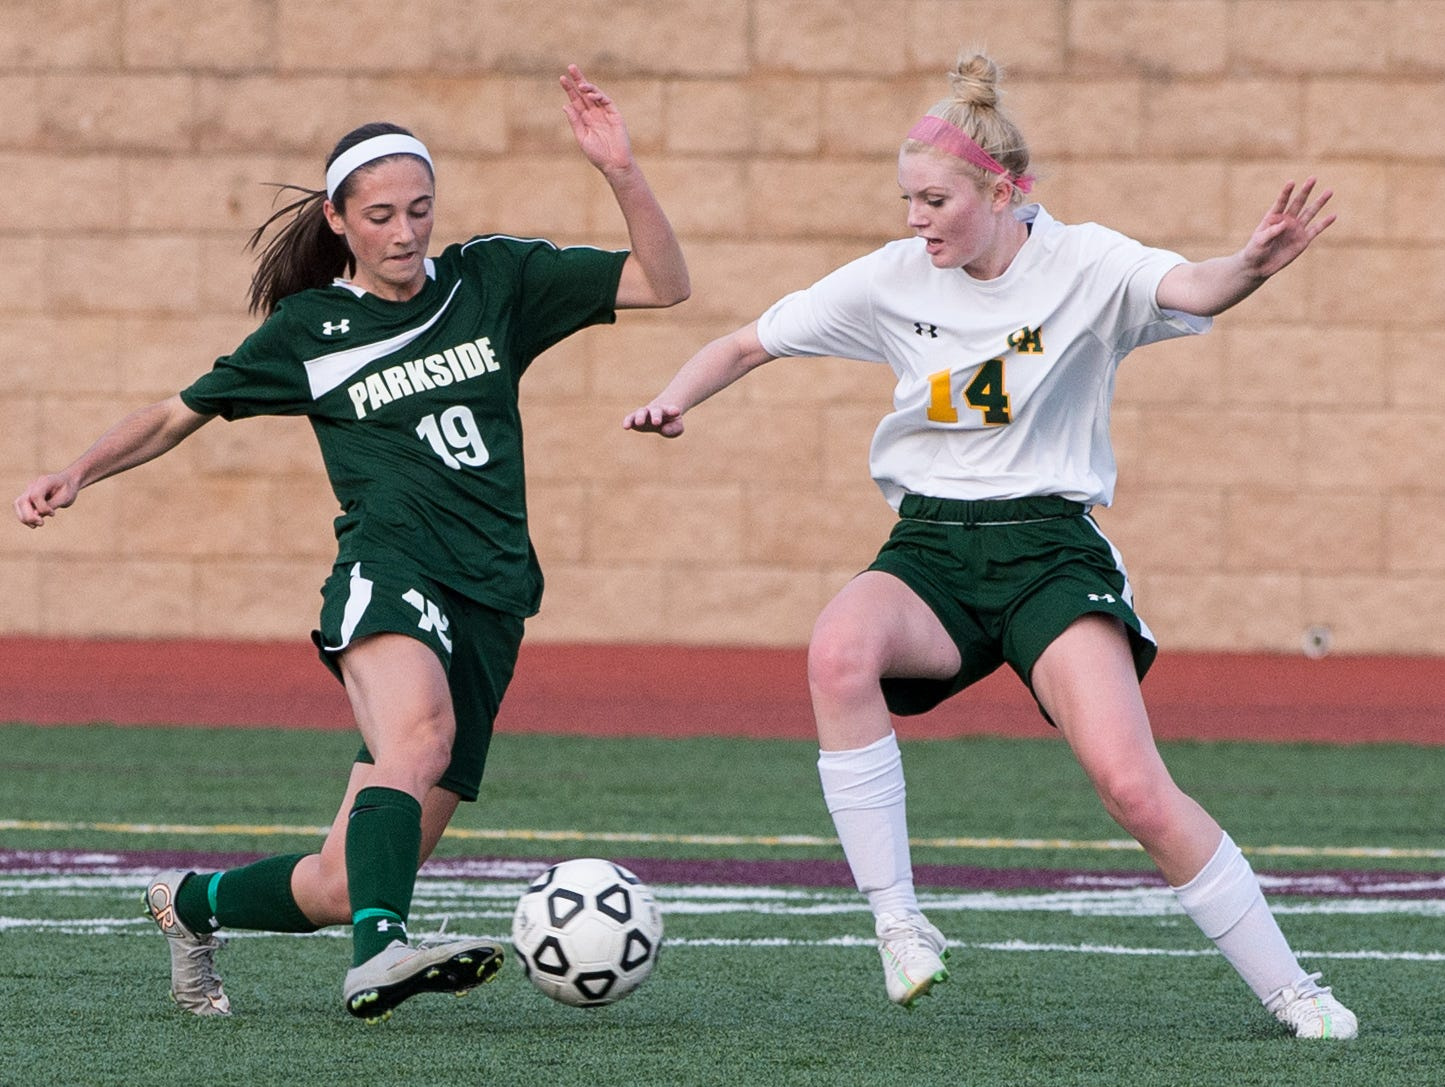 Parkside's Blair Vilov (19) attempts to move the ball around Queen Anne's Meagan Lukehart (14) in the Bayside Championship at Washington College in Chestertown on Monday, October 26th.